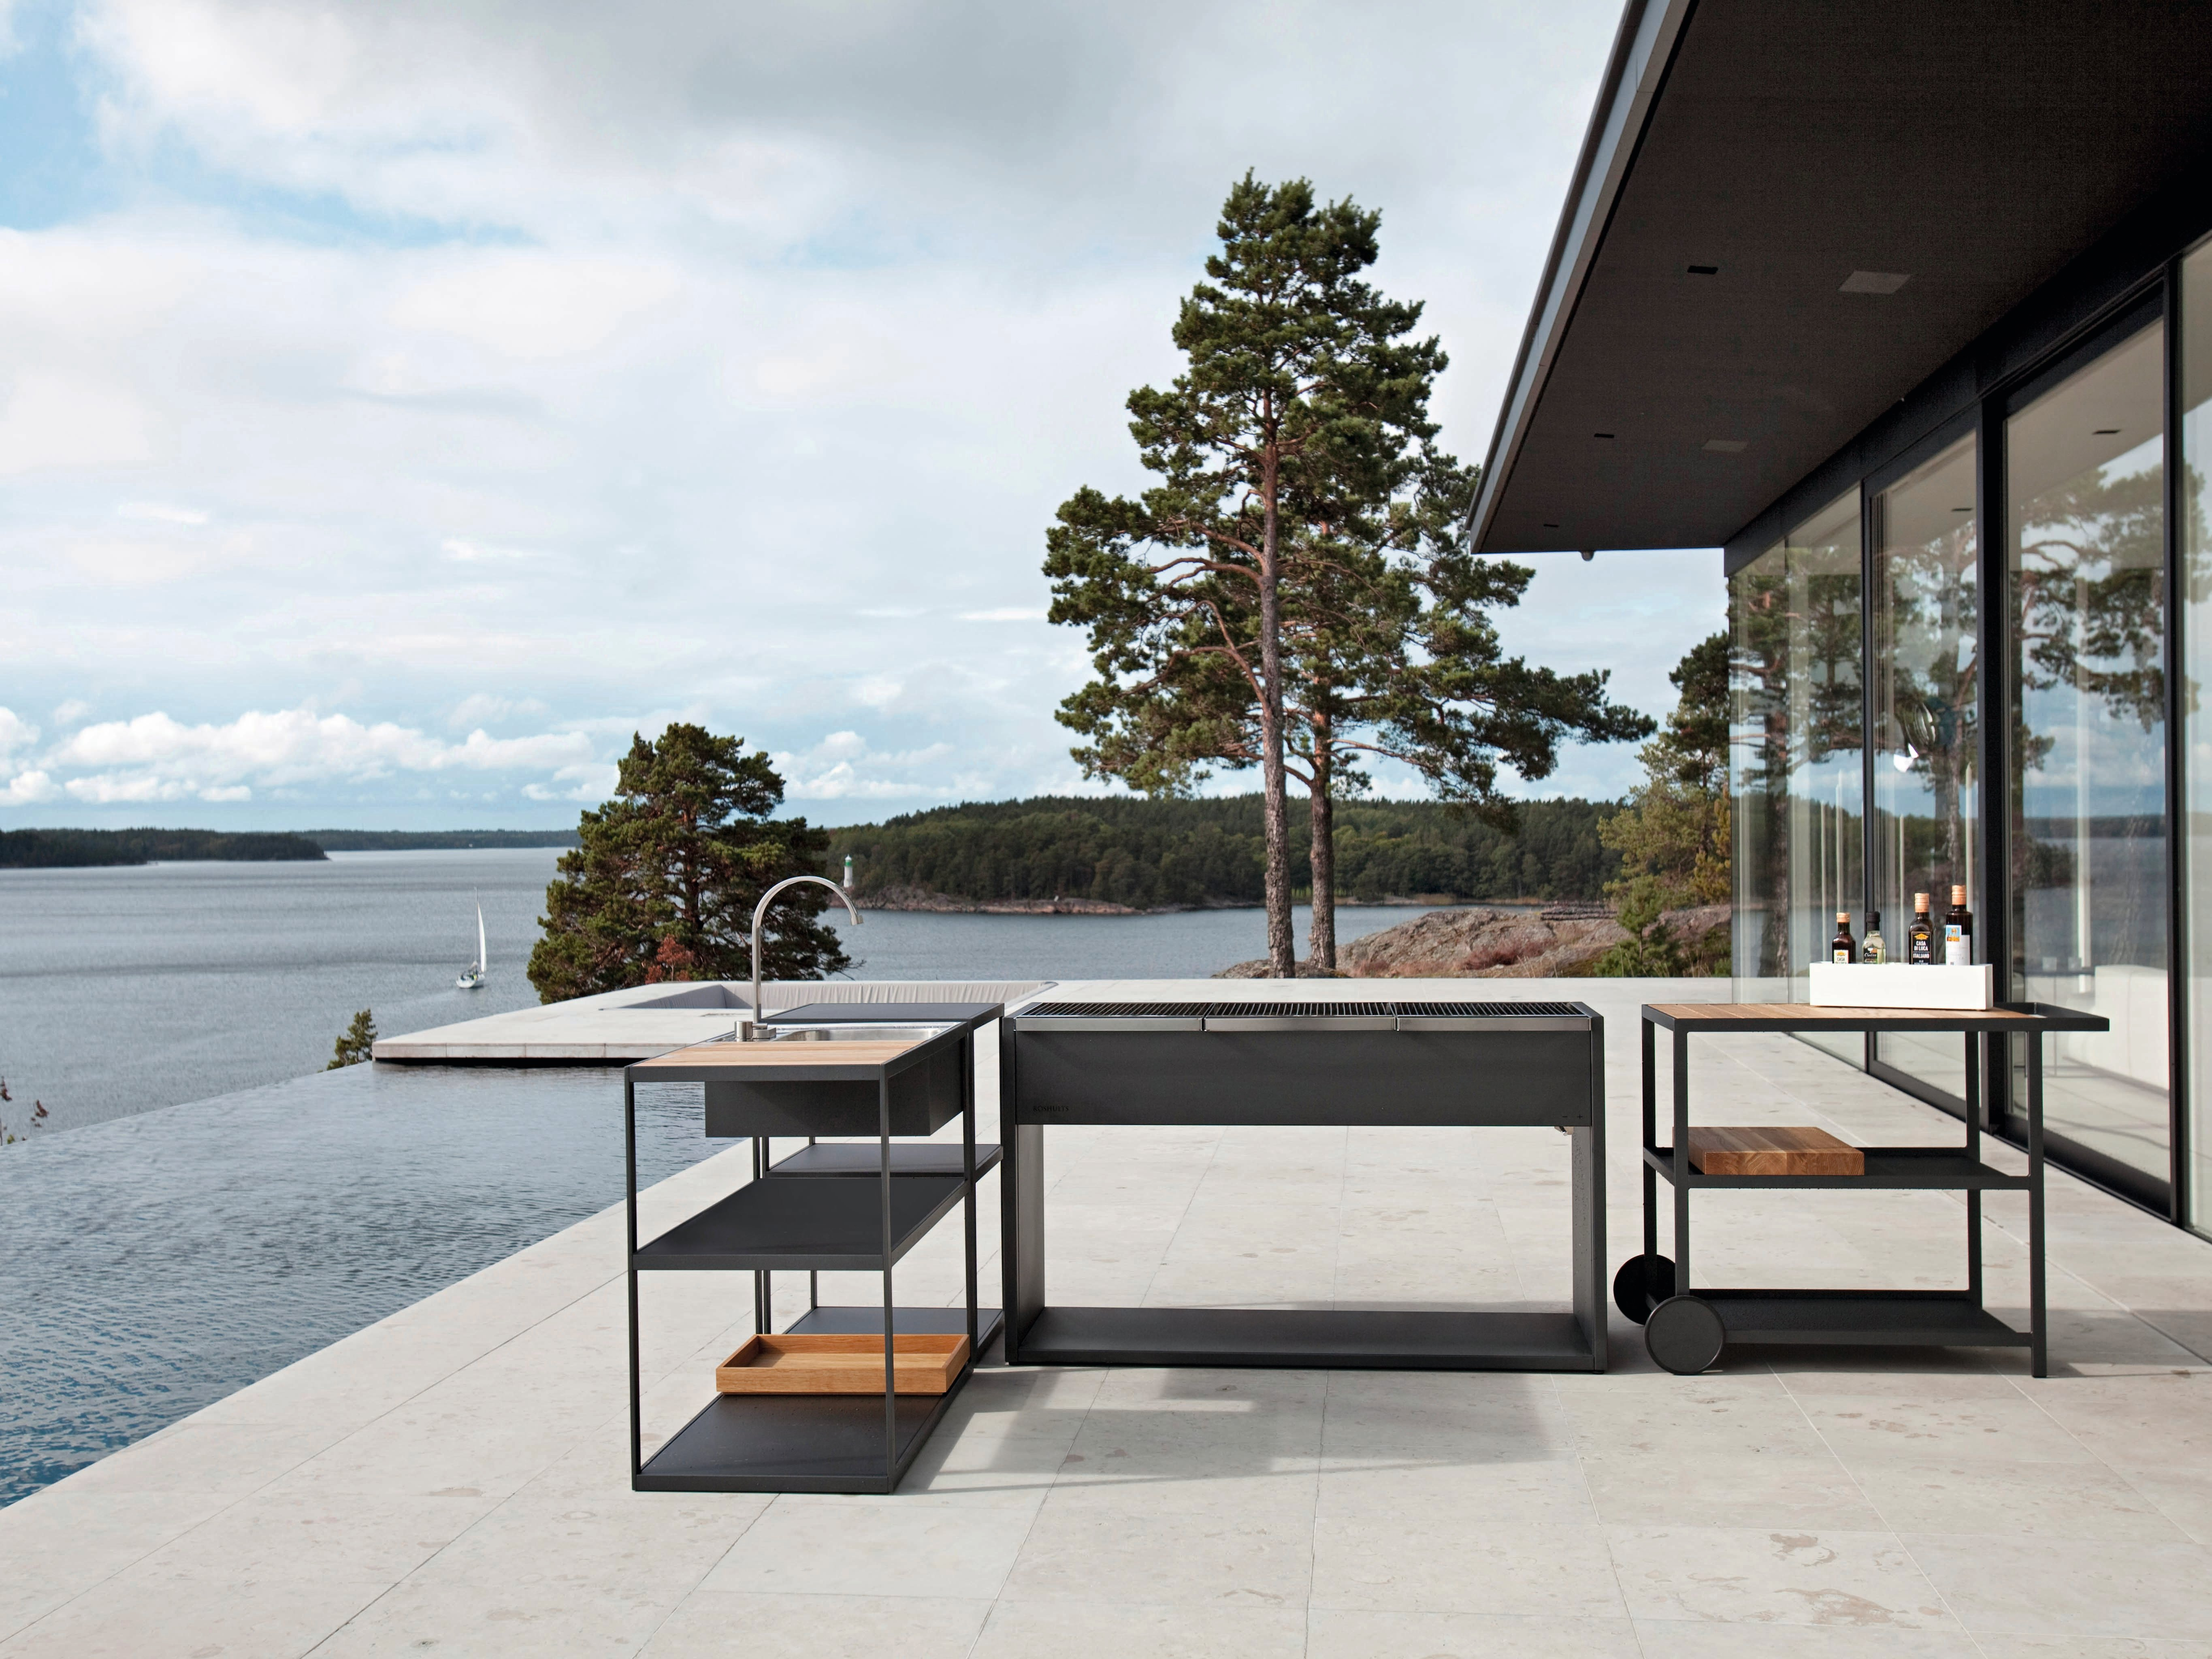 Minimalist design from Röshults gives an airy feeling that echoes the clean lines of this modernist home's exterior.